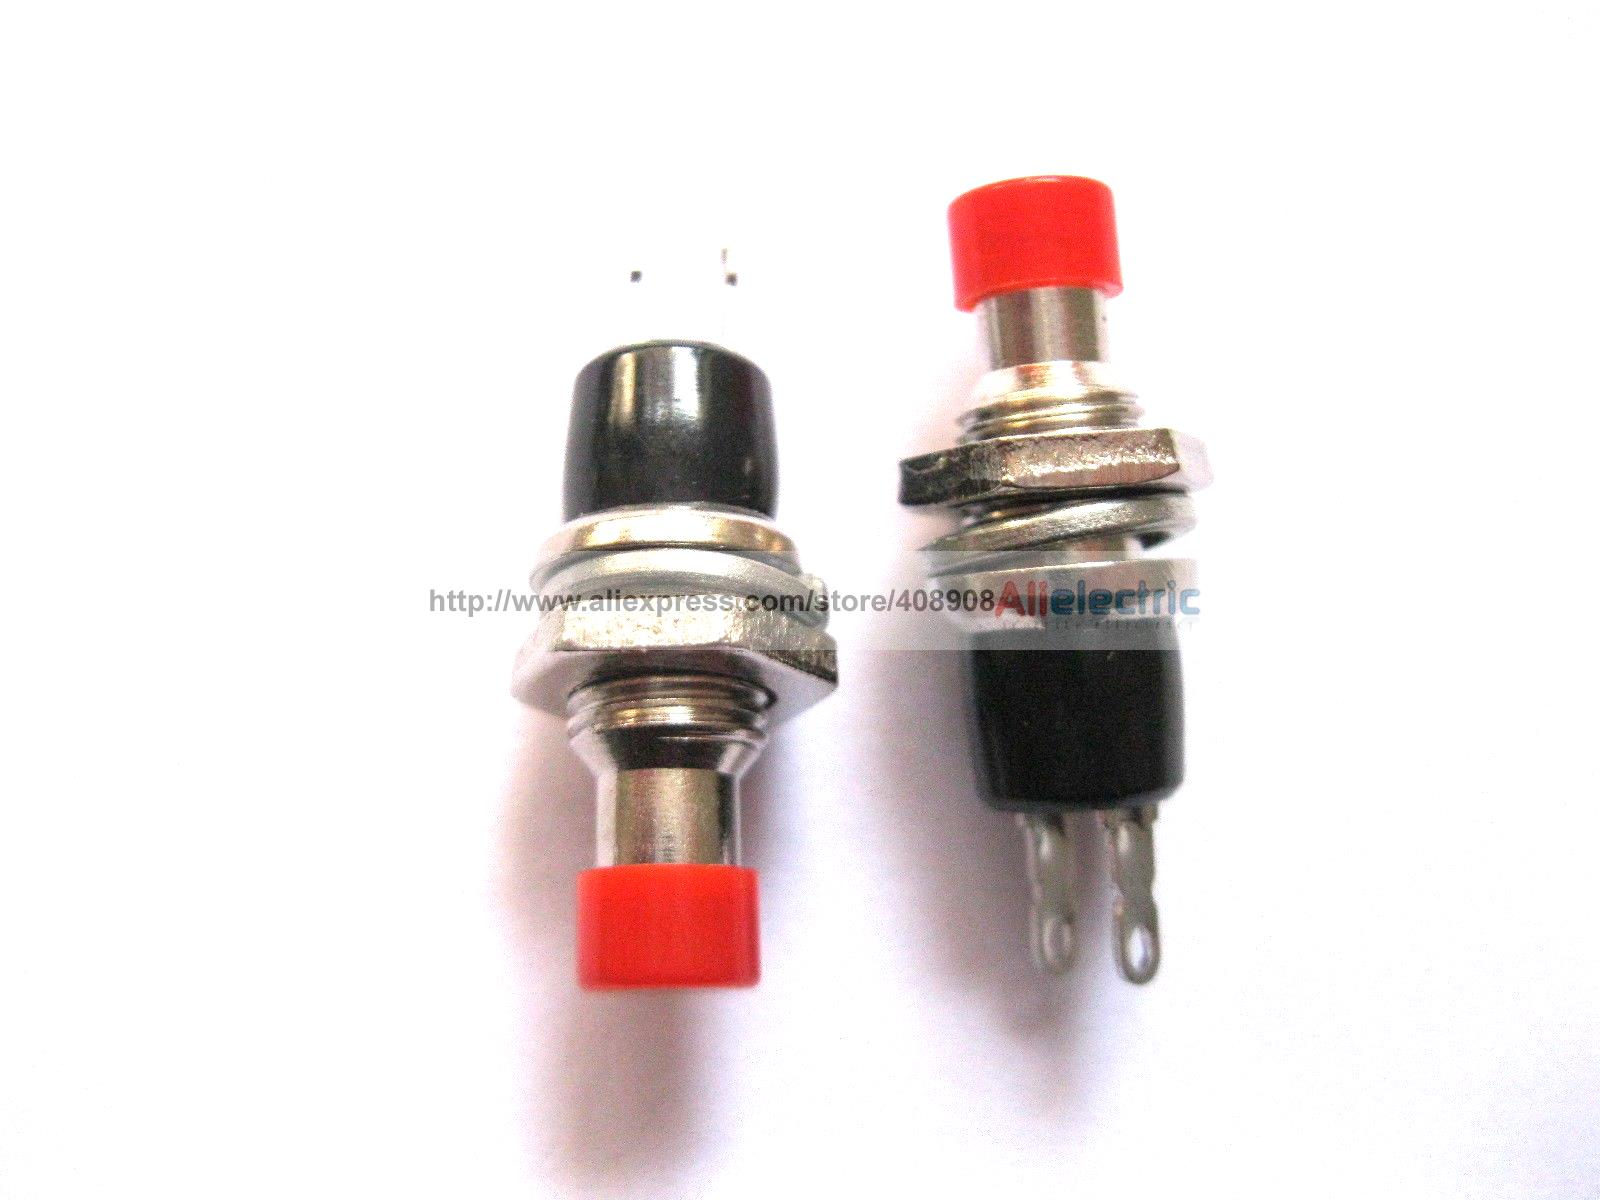 40 Pcs SPST Mini Push Momentary Switch Red Cap 250V 3A 125V 6A Nomal Off 10 pcs red 2 pin spst off on n o round momentary push botton switch 1a 250v ac